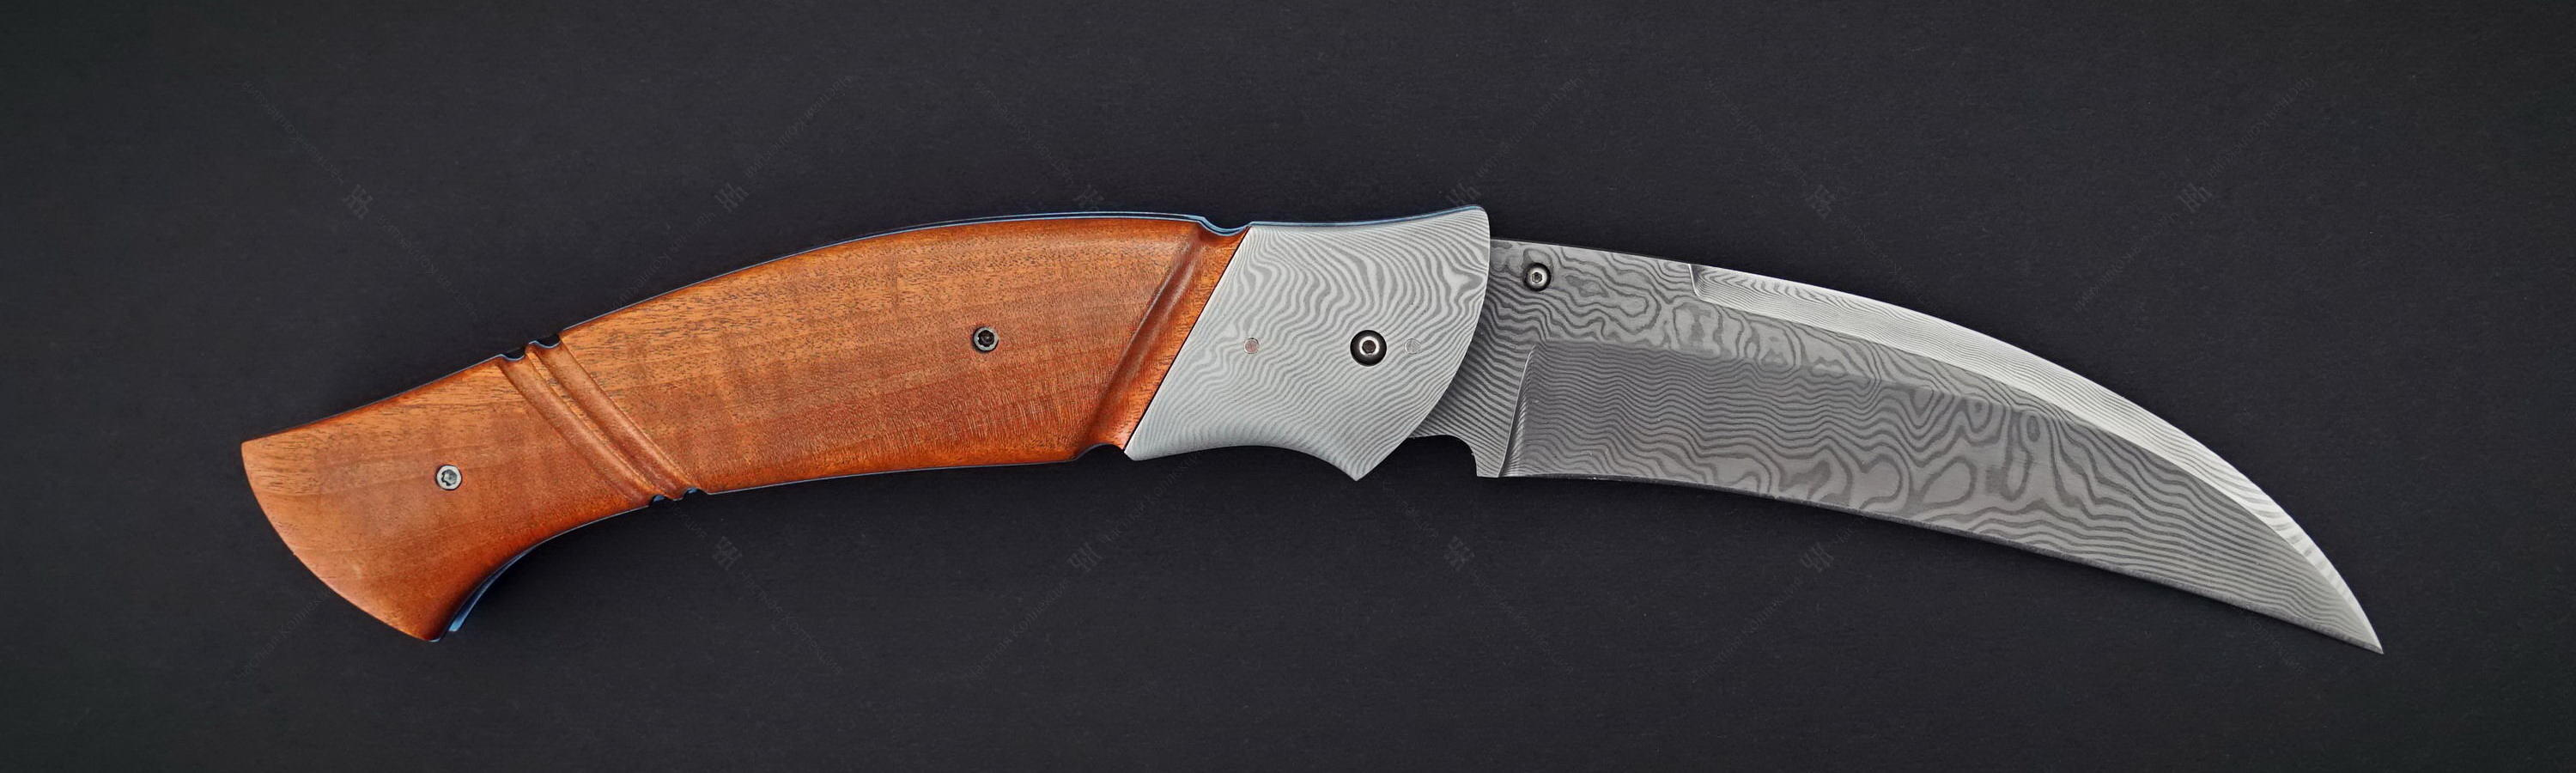 Reese-Weiland-custom-knives